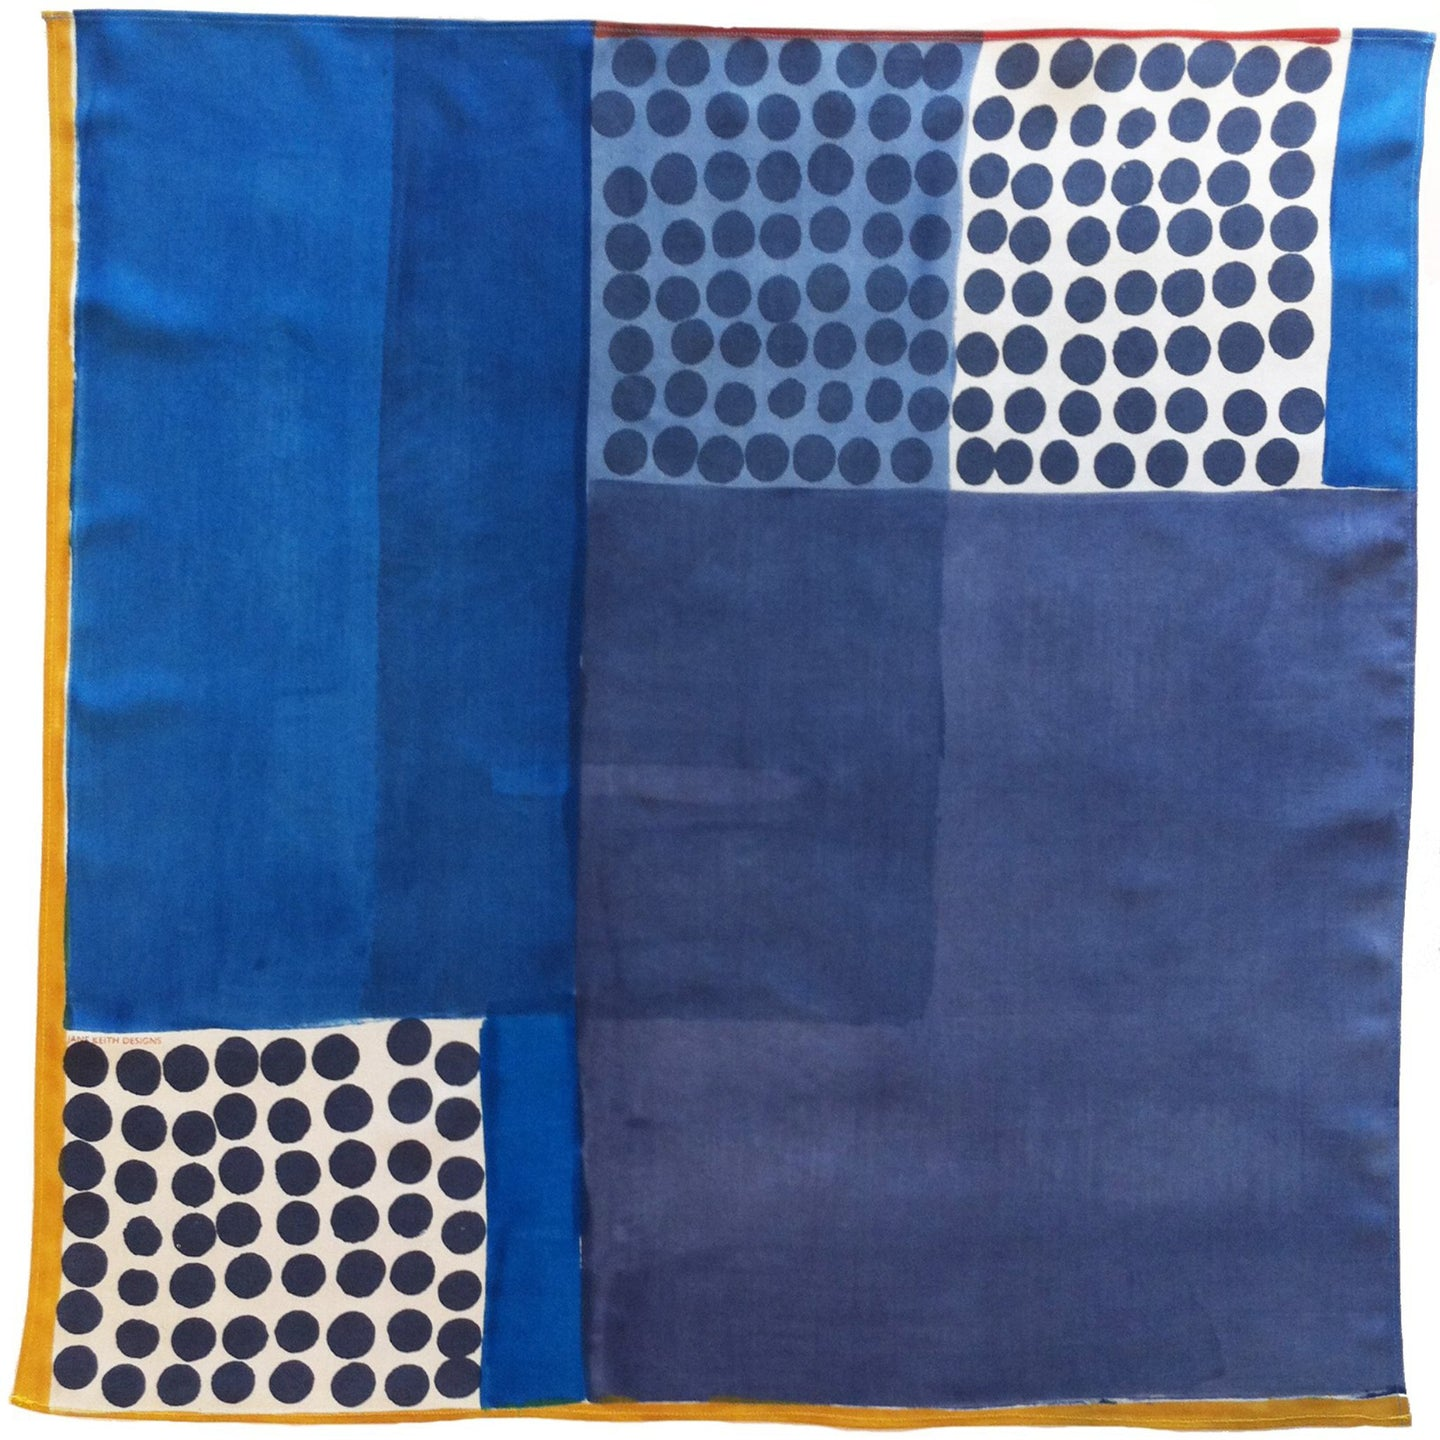 Jane Keith Designs Hand printed silk neckerchief style no 13 - blues